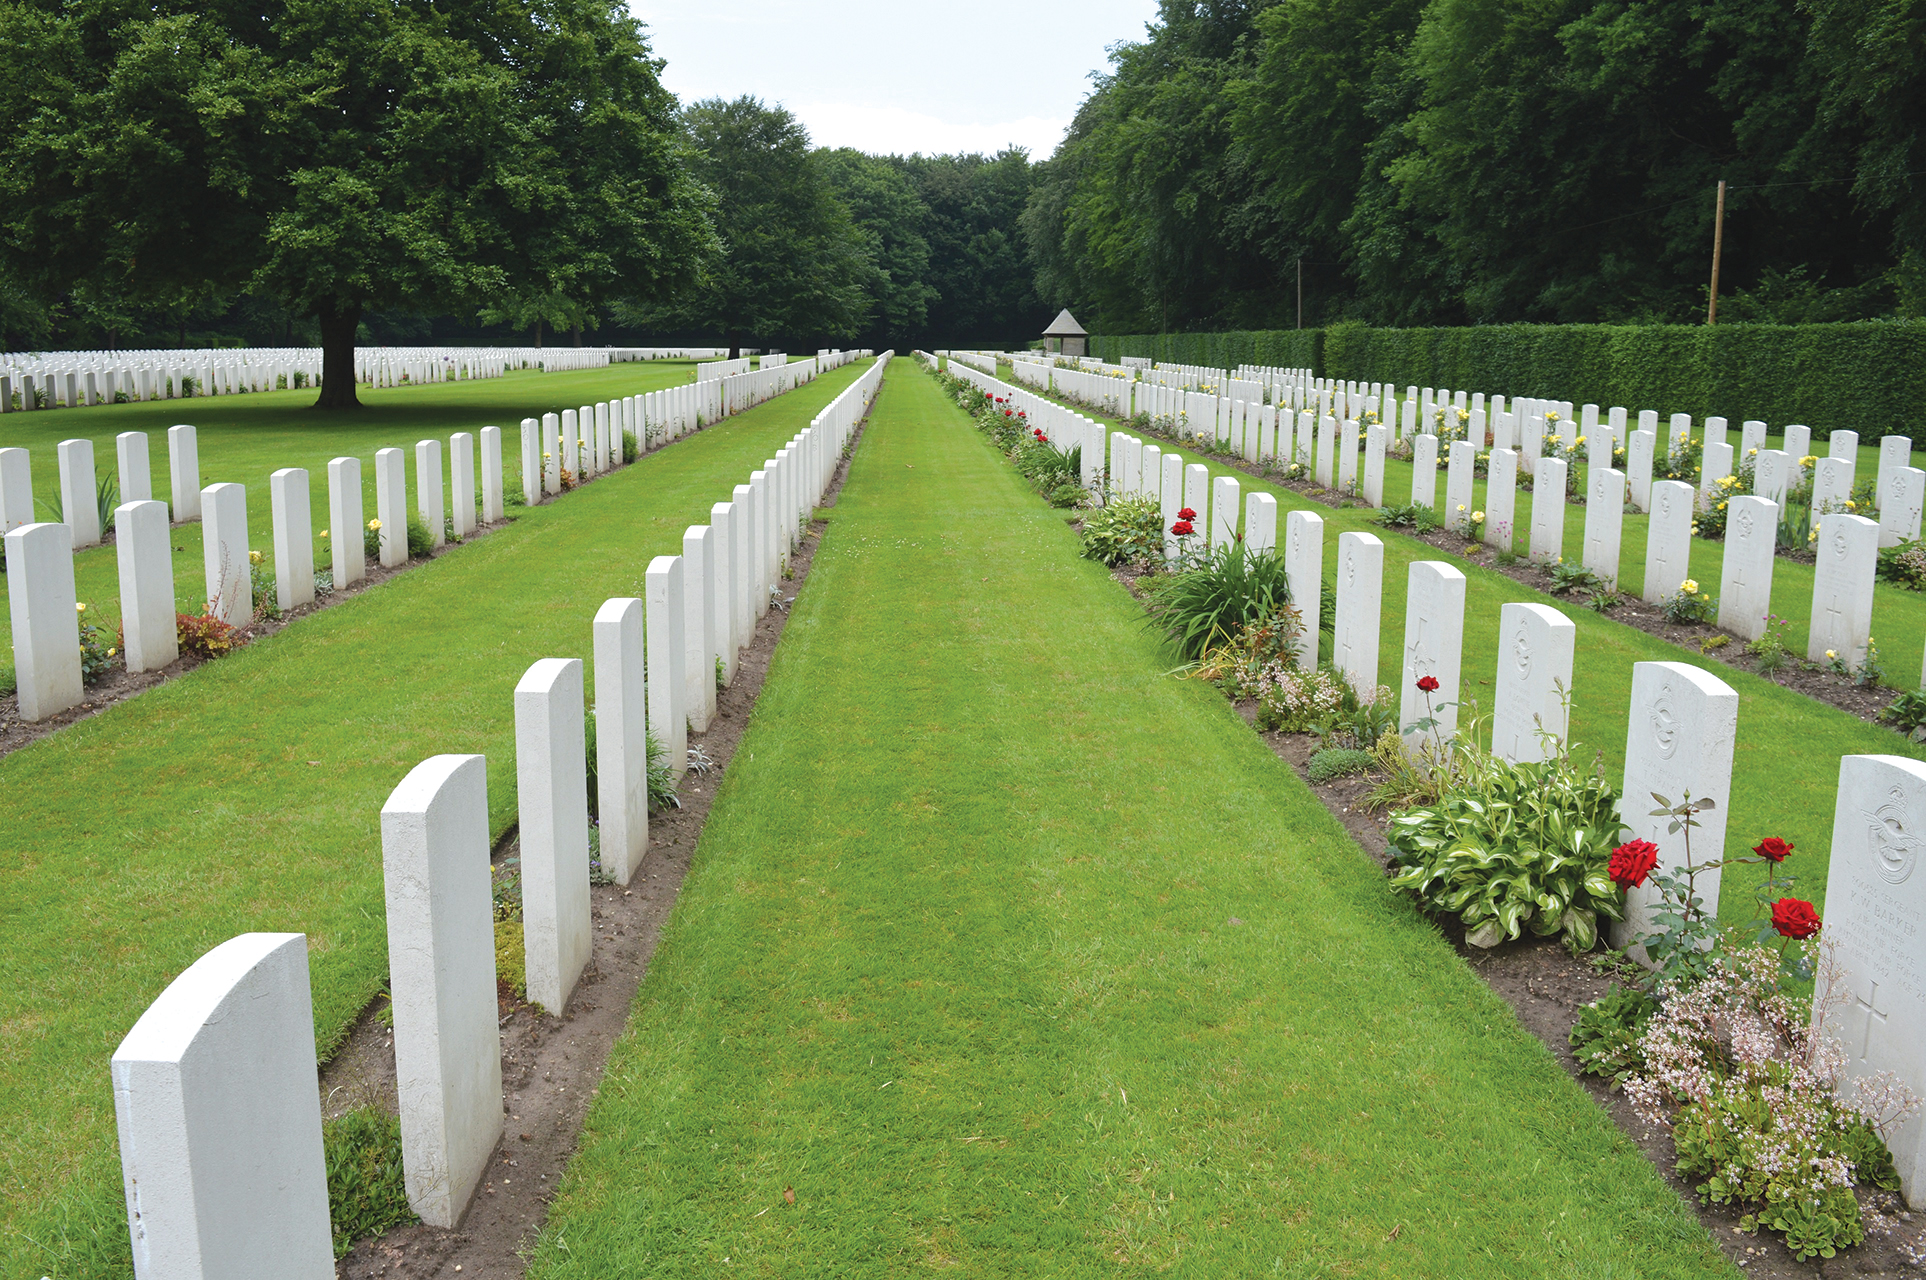 """After being exhumed and relocated three times, Bonter finally rests in the Reichswald Military cemetery near Kleve. """"Somehow I always imagined I should fear death. … Now I have not the slightest fear. … I have never learned to hate the enemy. I fail to see any glory in wars. I have seen too many of my friends, some the best types of fellows you could find anywhere in this world, killed."""" Excerpt from Bonter's letter January 1945. Photo courtesy Marmora Historical Society, Bonter family archives. Letter excerpt courtesy of Anne Philpot."""